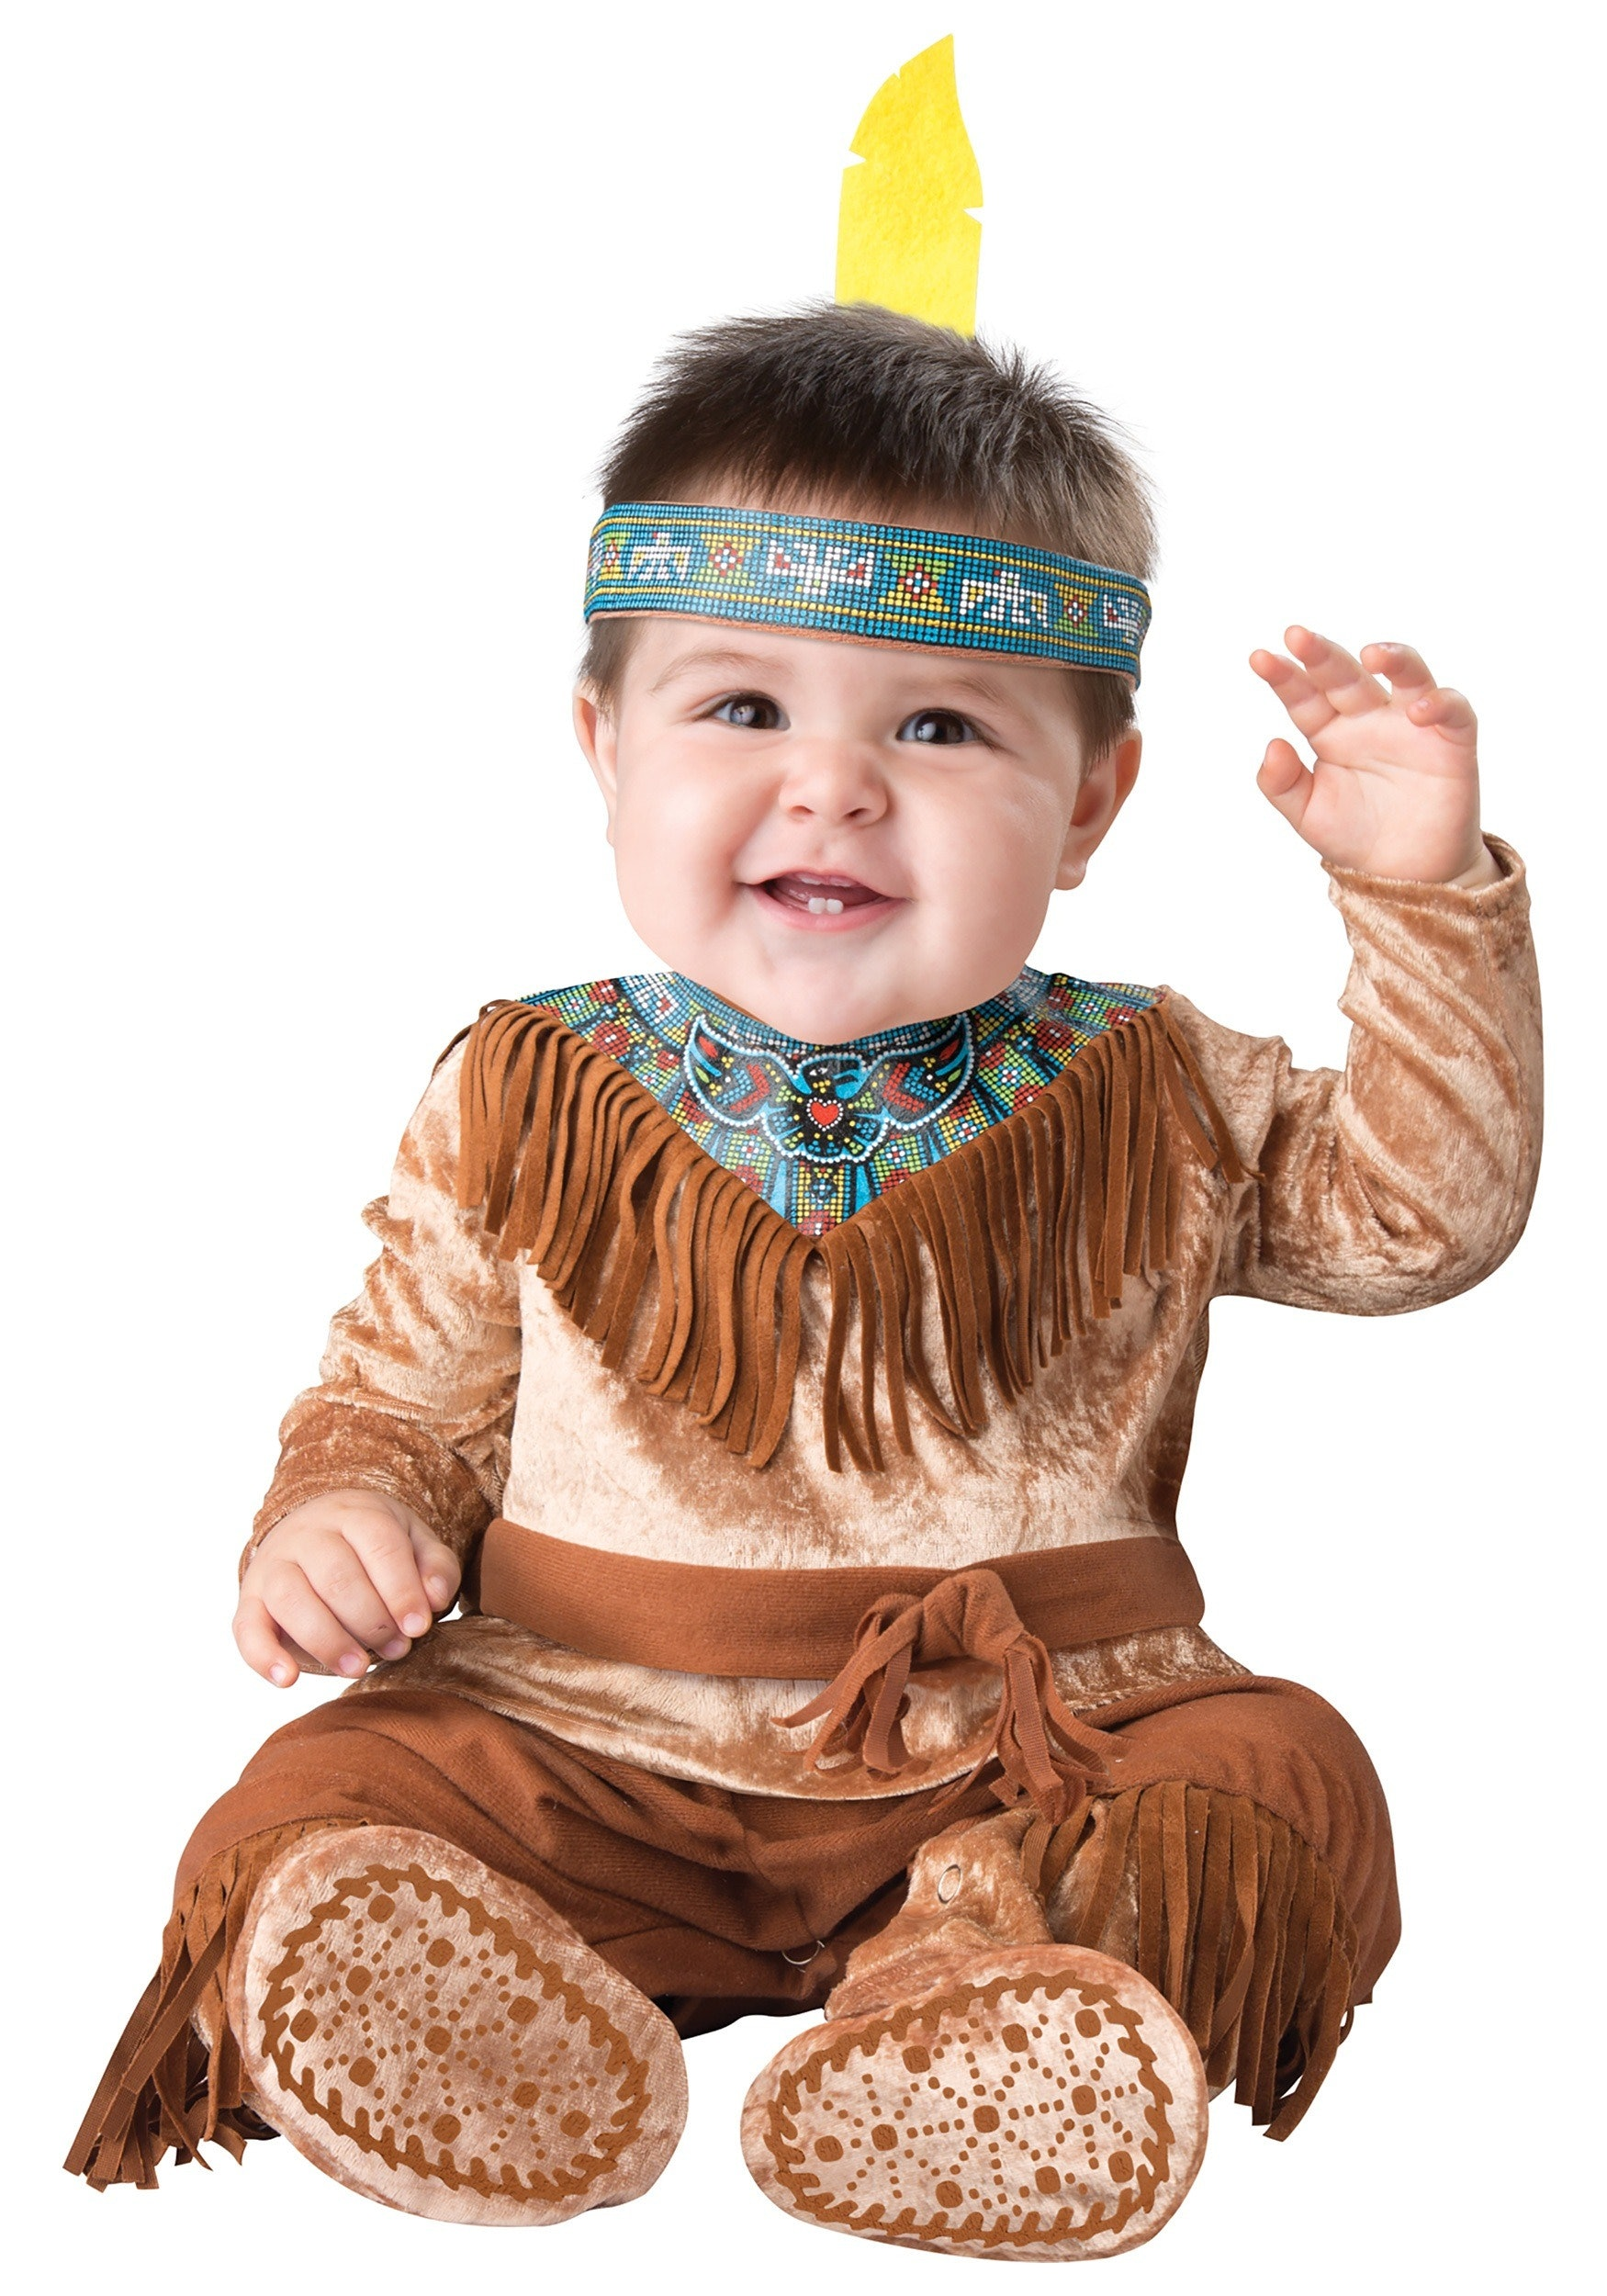 All Of The Sexist Racist u0026 Just Mean Halloween Costumes You Should Not Dress Your Kid As This Year  sc 1 st  Romper & All Of The Sexist Racist u0026 Just Mean Halloween Costumes You Should ...